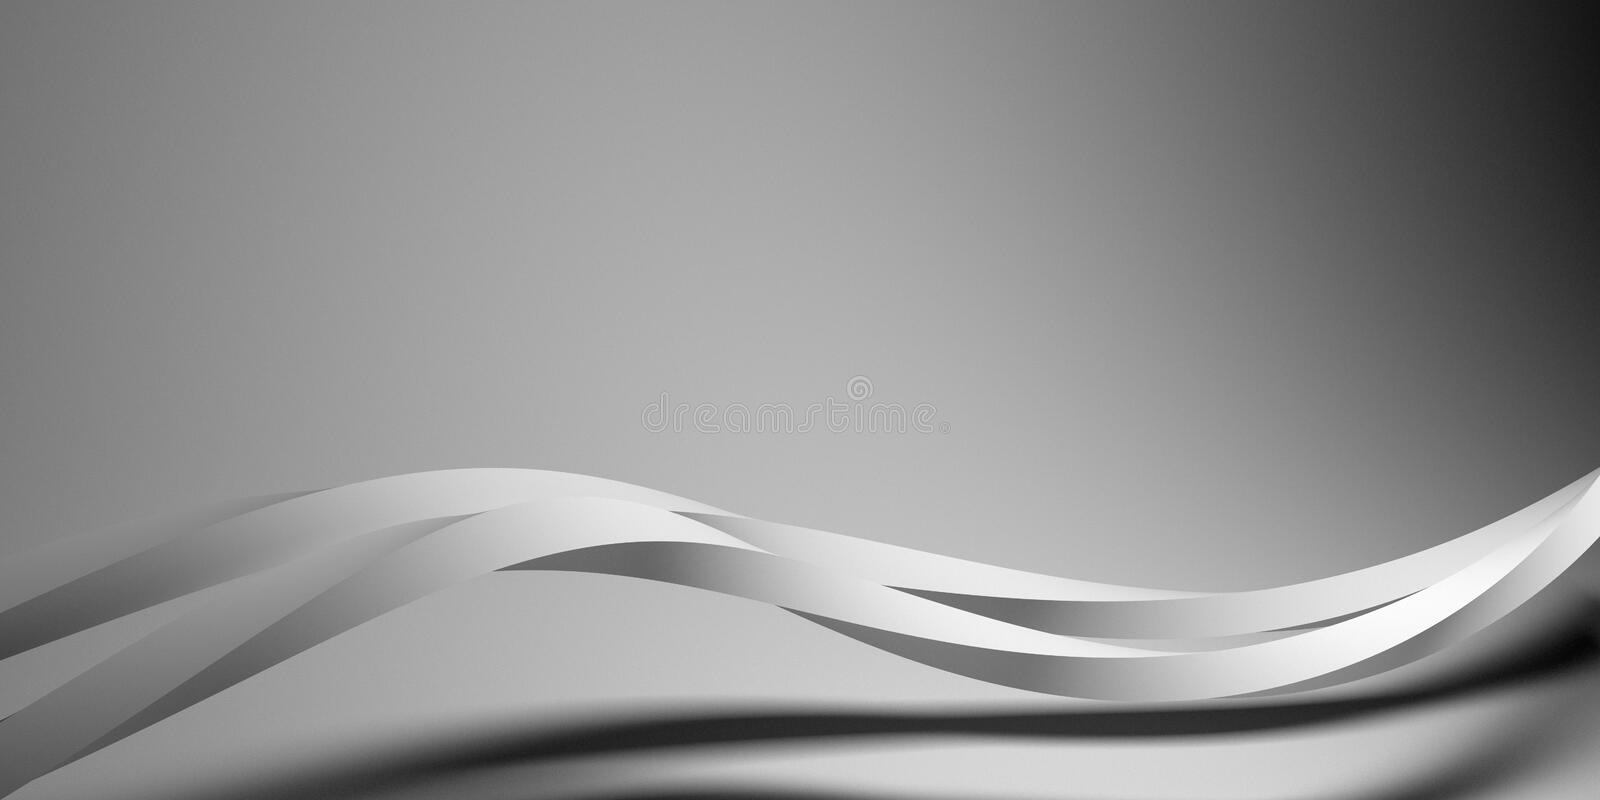 Abstract flow royalty free stock photos